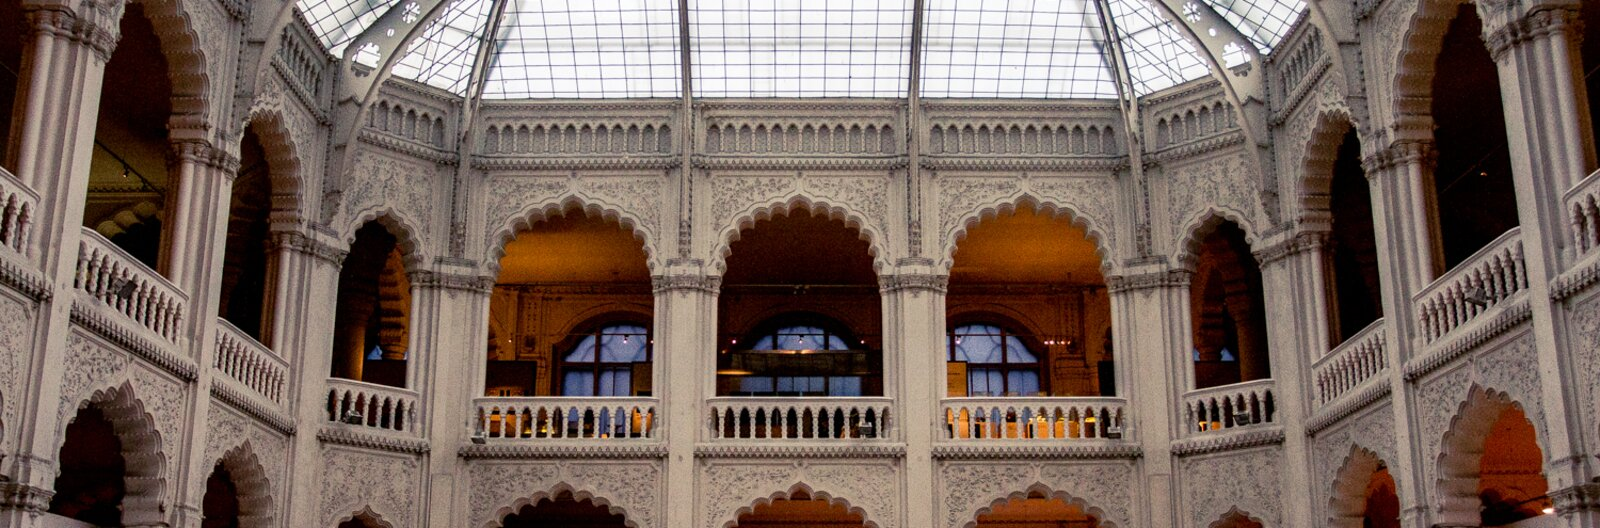 Master Hungarian Architect Lechner Exhibition Opens At Museum Of Applied Arts